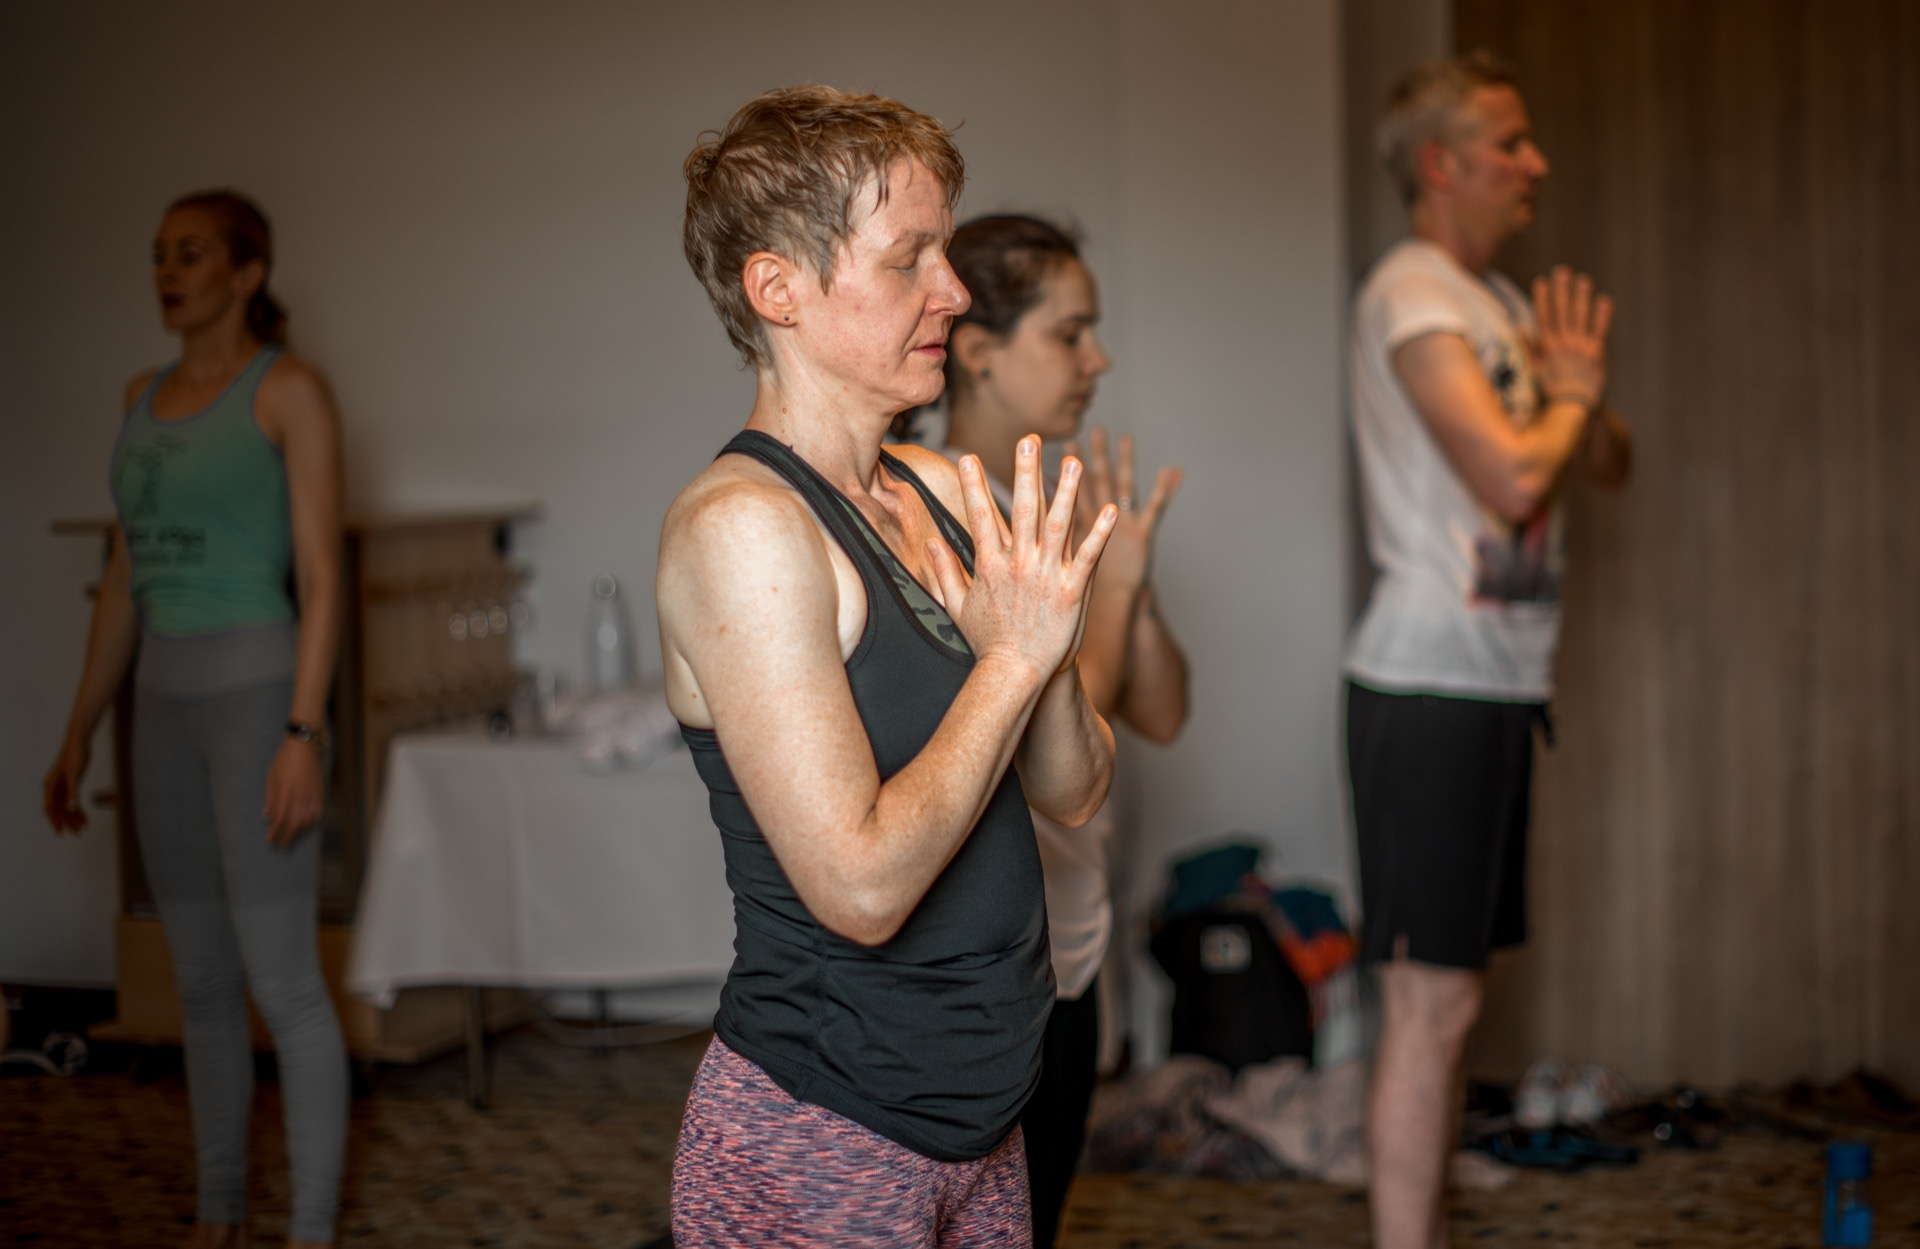 Hie-Kim-Friends-2019-Yoga-Retreat-Alina-Matis-Photography-094 - Hie Kim Yoga - Yoga Retreat - Yoga Workshops und Reisen